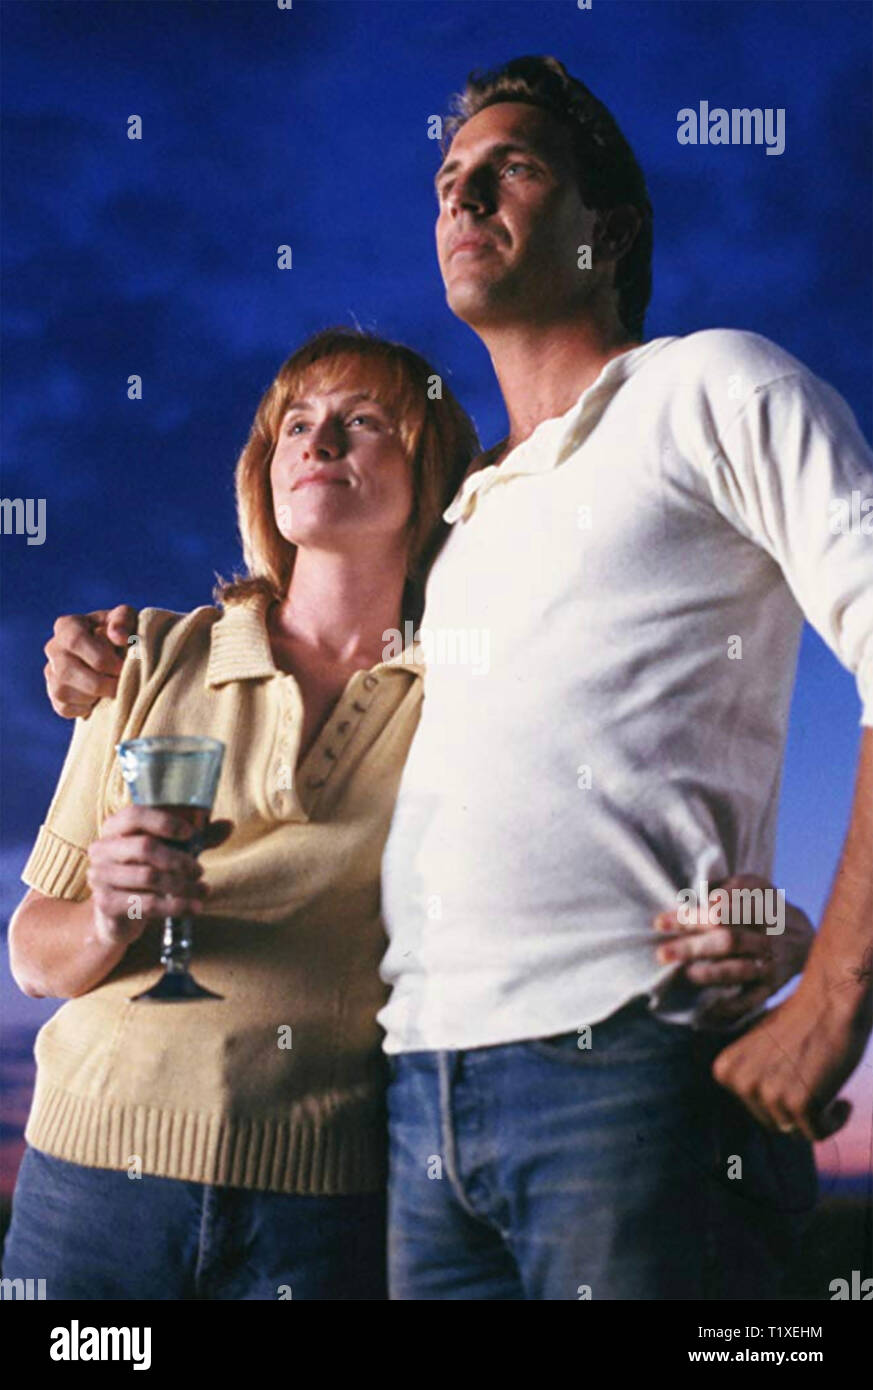 Champ de rêves 1989 Universal Pictures film avec Kevin Costner et Amy Madigan Photo Stock